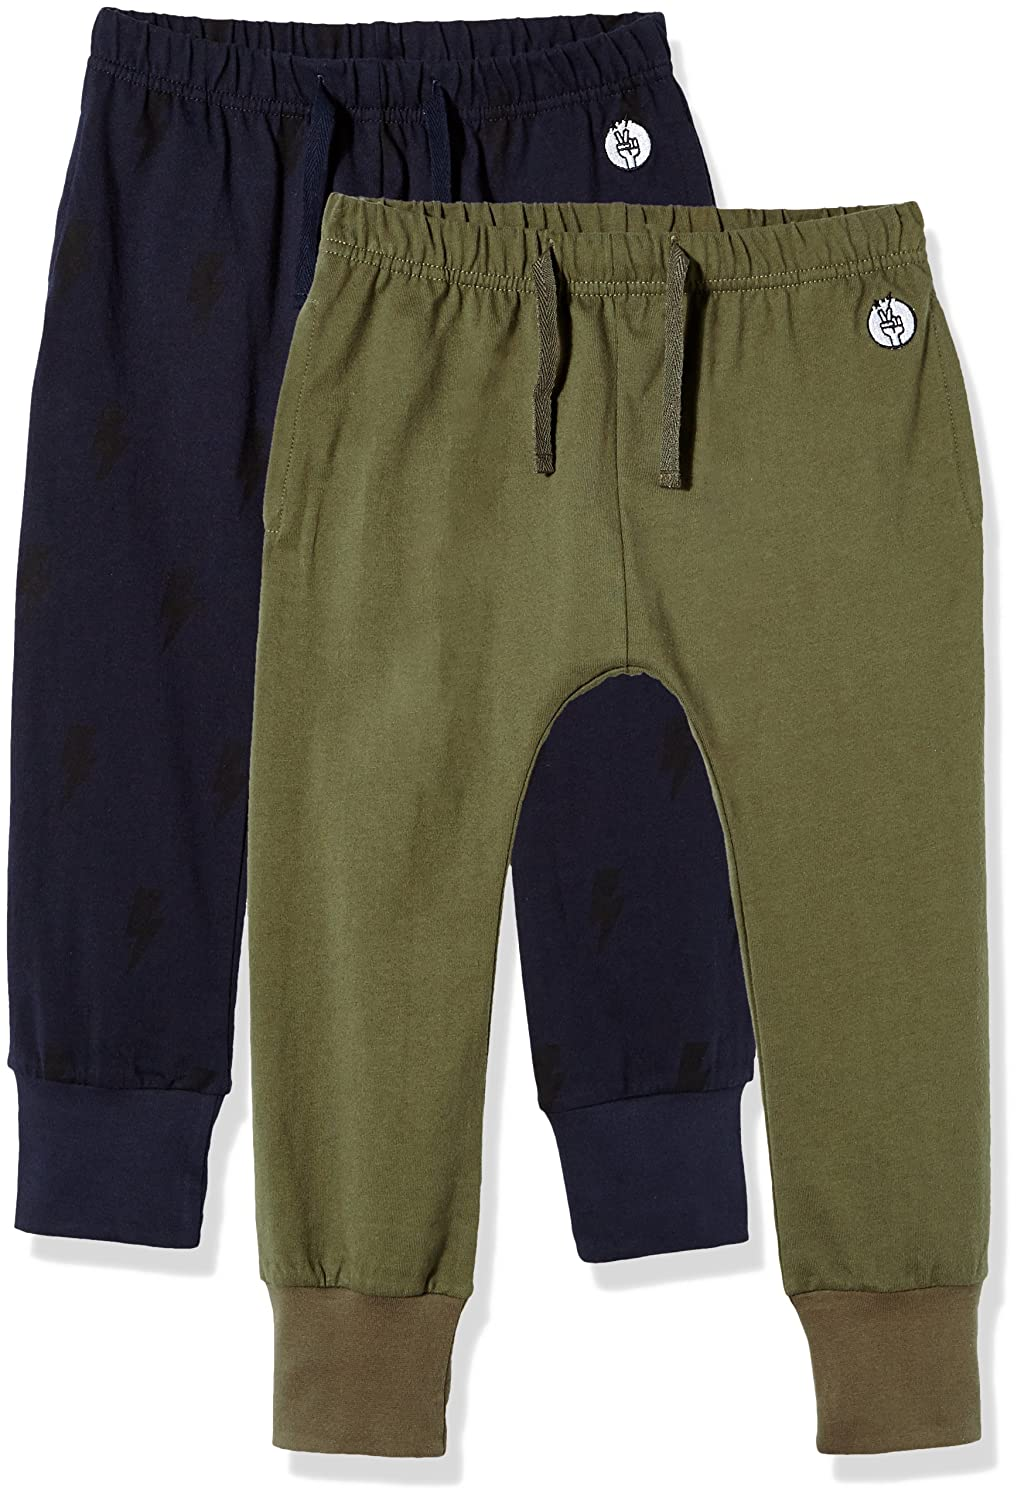 Kid Nation Kids' 2 Pack Cotton Beach Pant for Boys or Girls JIAYIPANTS039